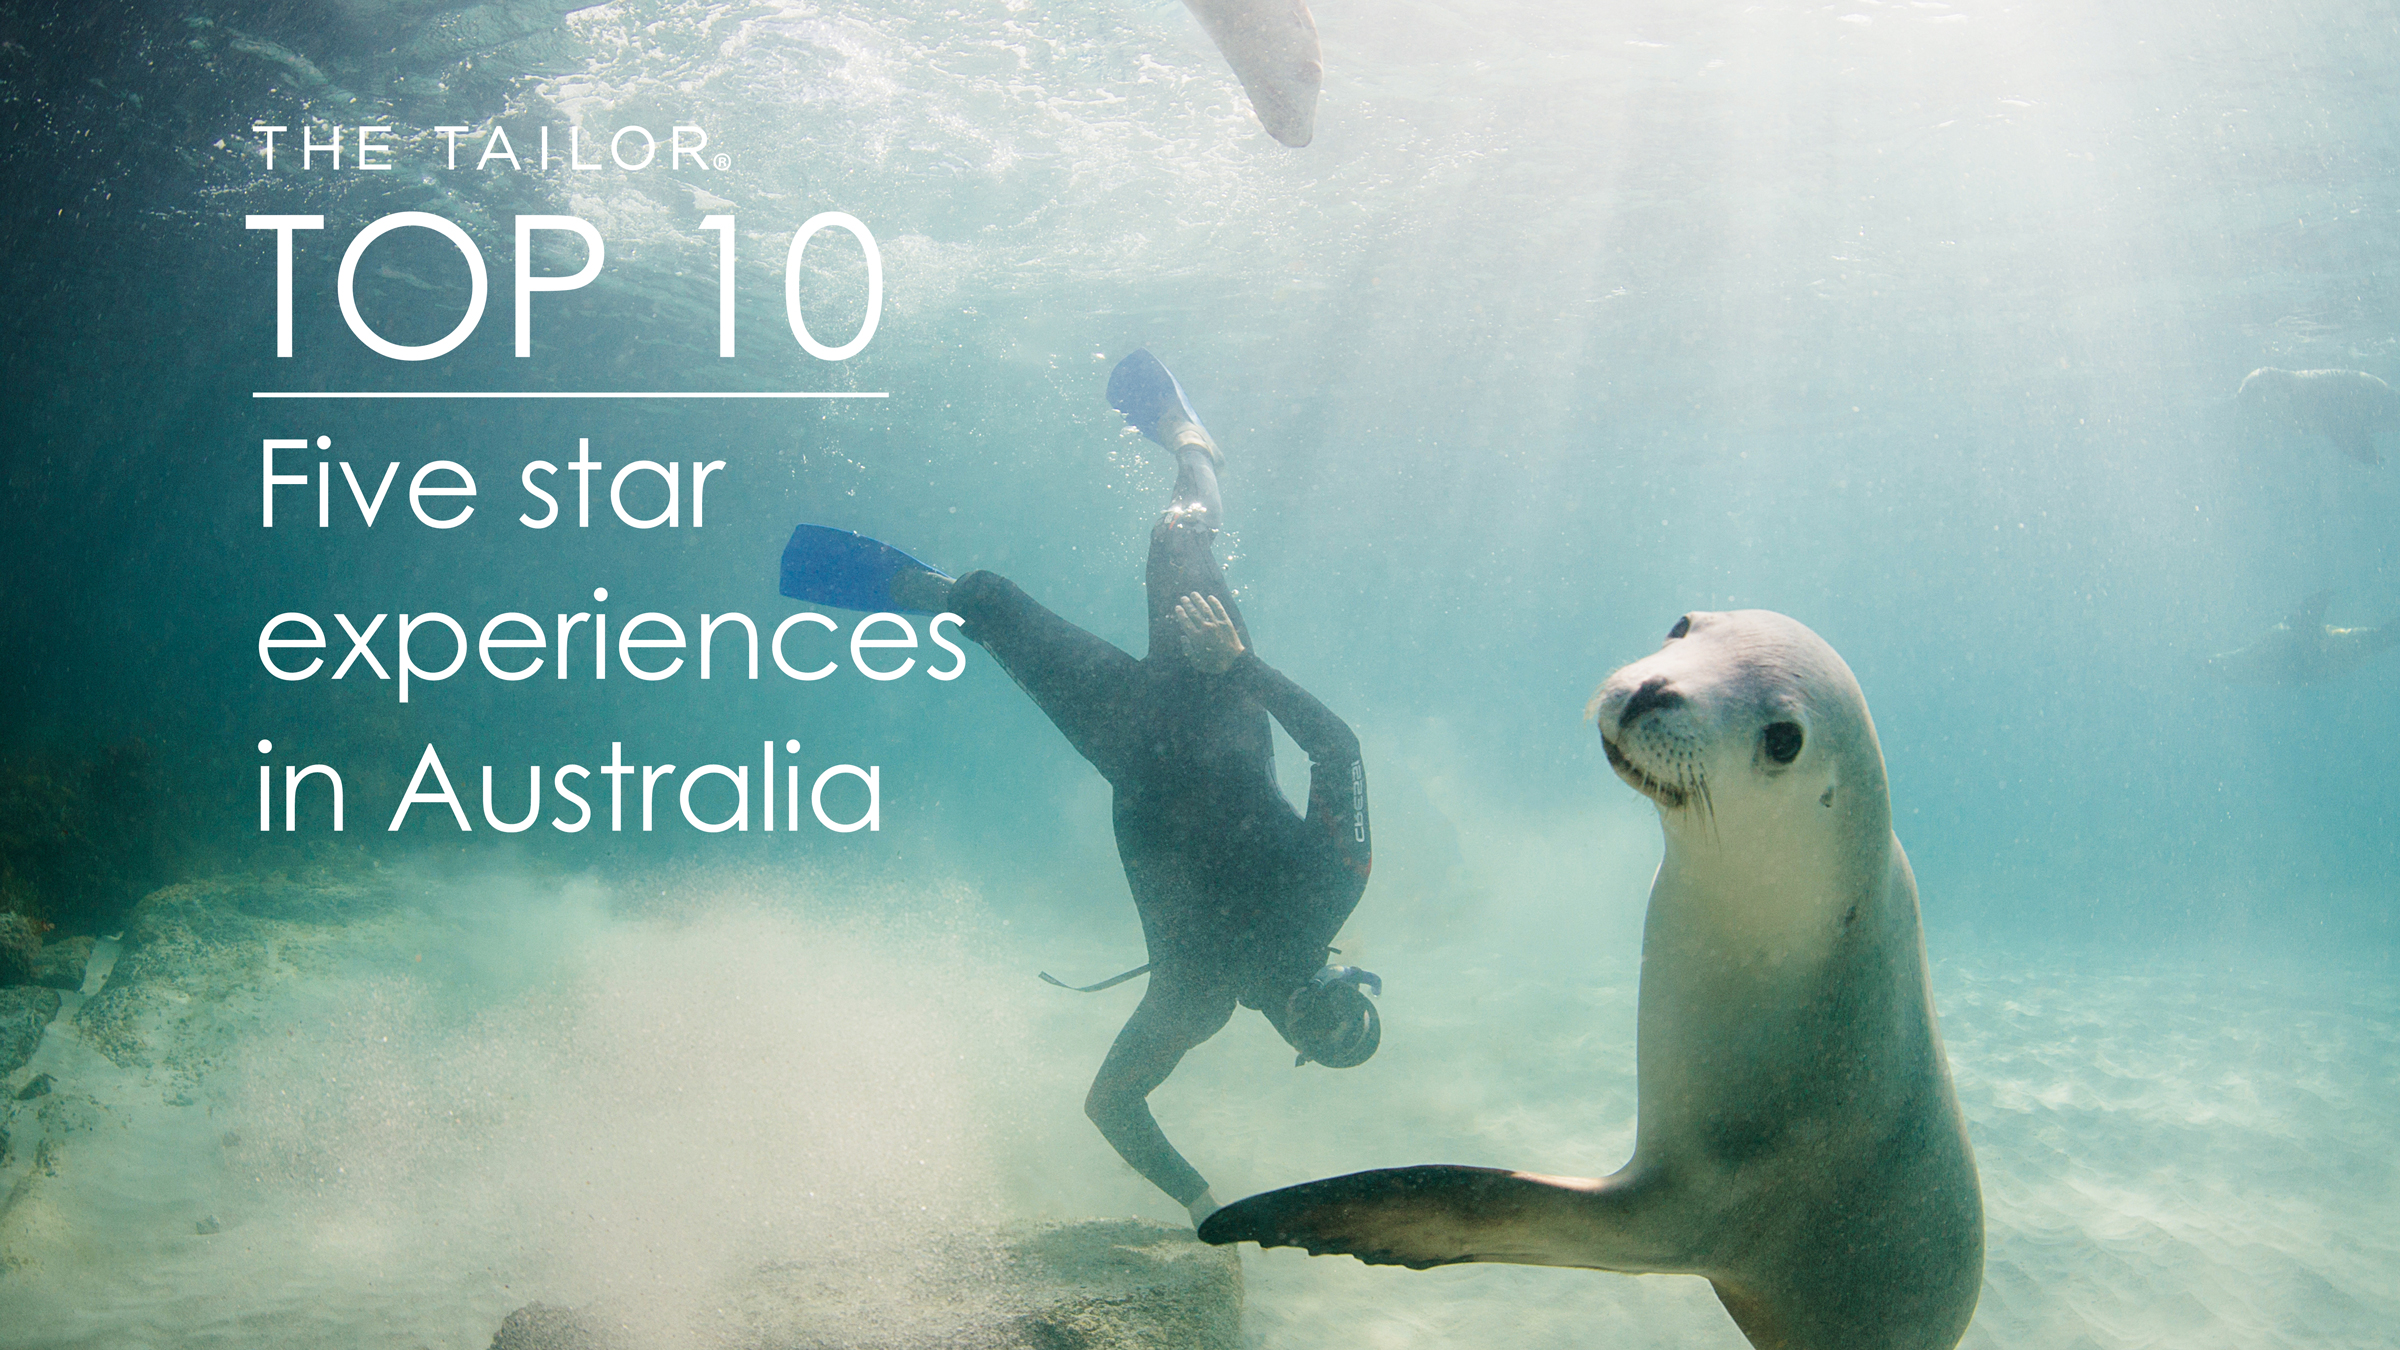 Thumbnail for the listing 'Australia's Top 10 Five Star Experiences'